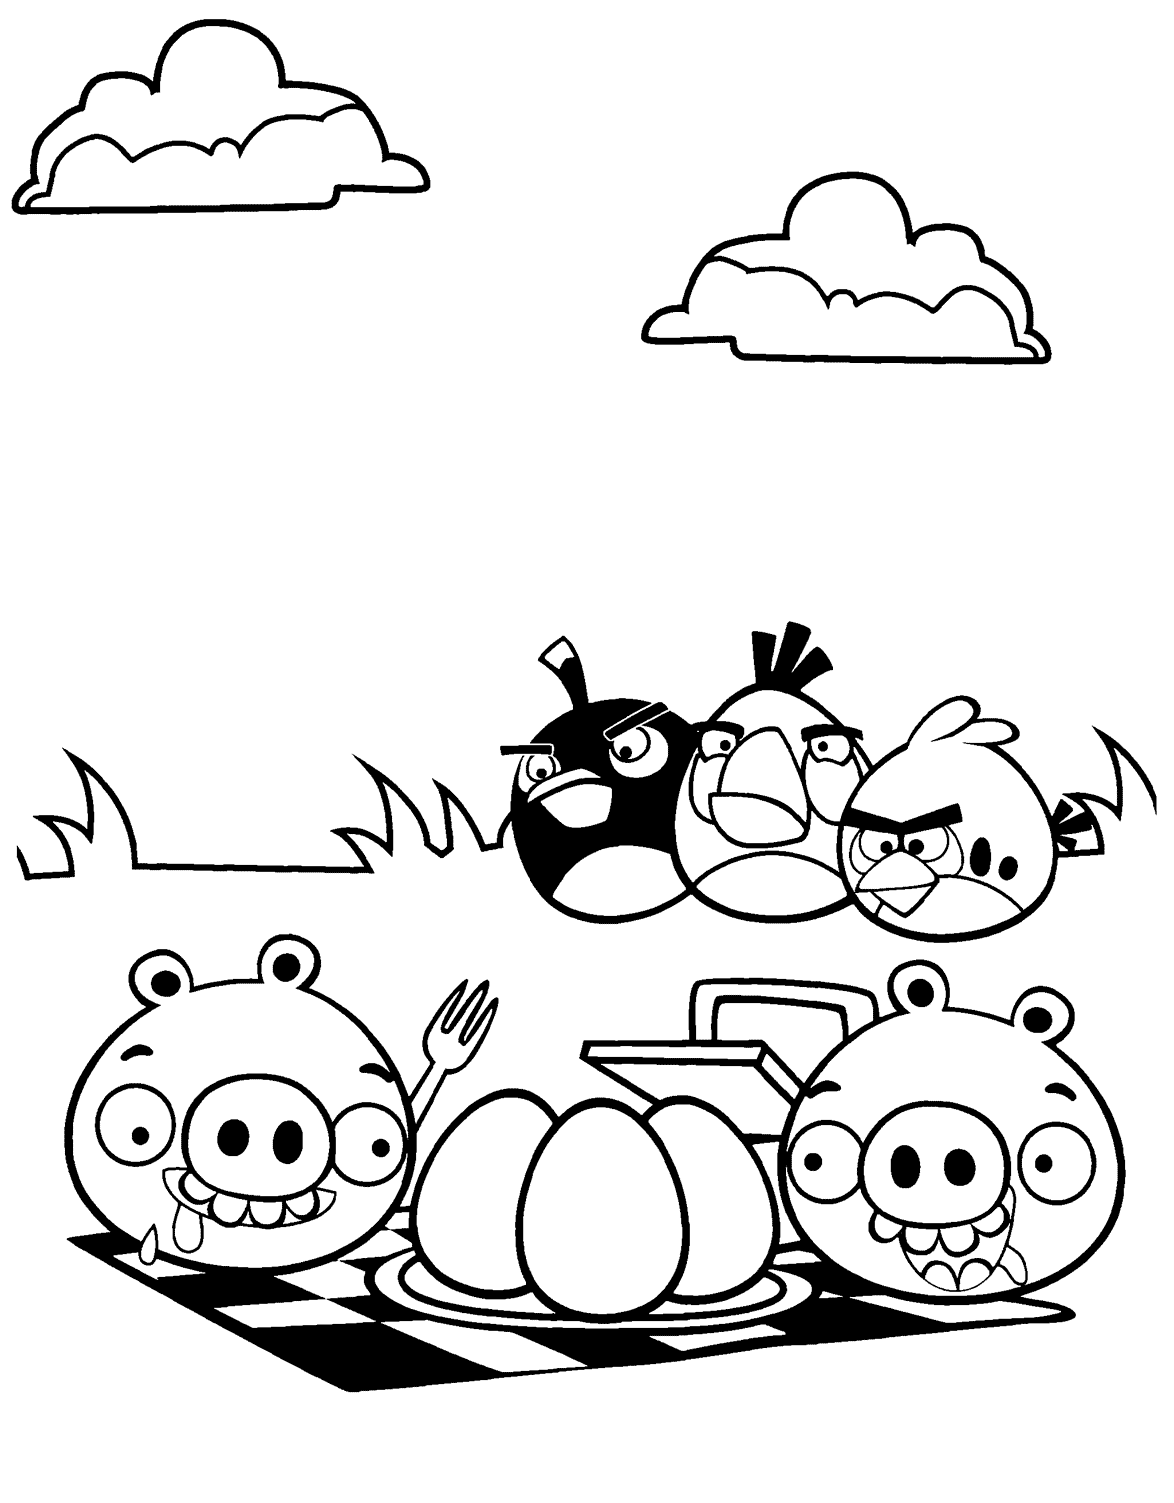 angry birds go coloring pages 70 angry birds disegni disegni da colorare stampabili angry go birds coloring pages